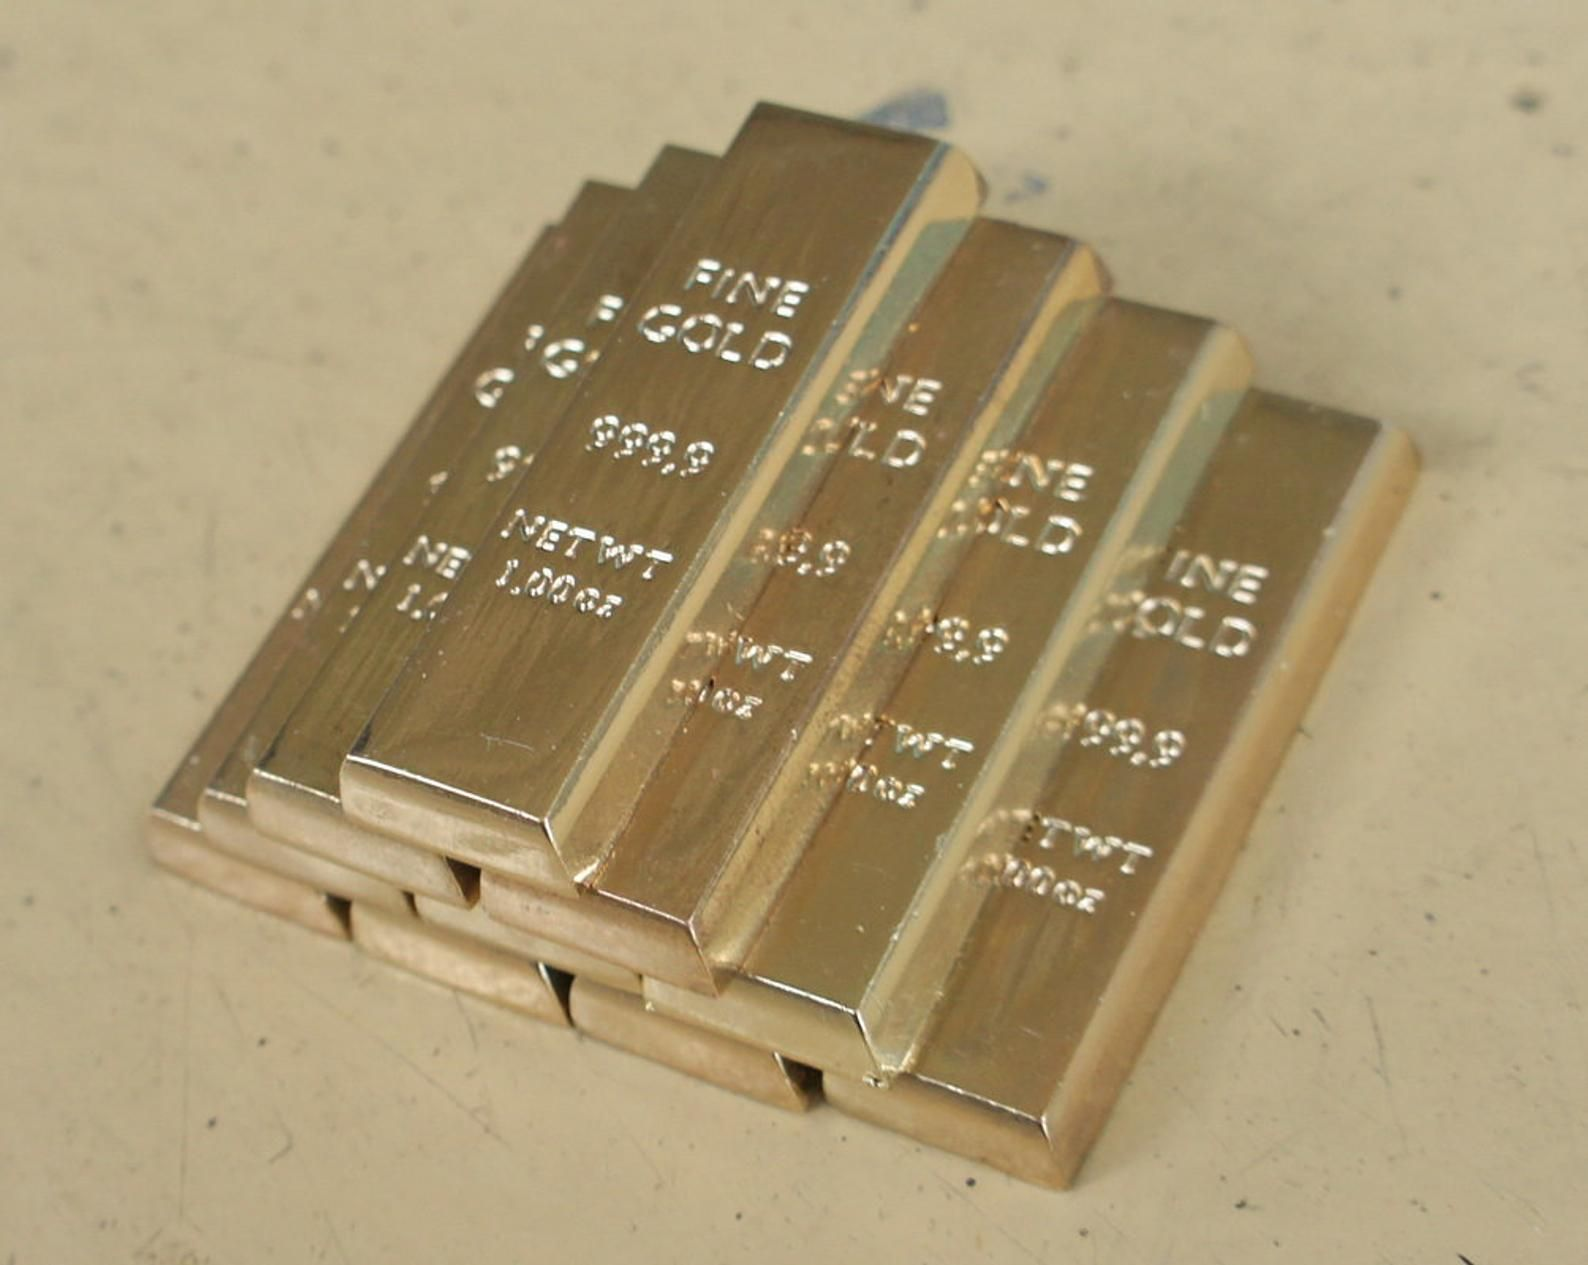 1 6 Scale Miniature Gold Bars 6 Pcs And Aluminium Briefcase Gold Bullion Bars Miniatures Gold Bullion